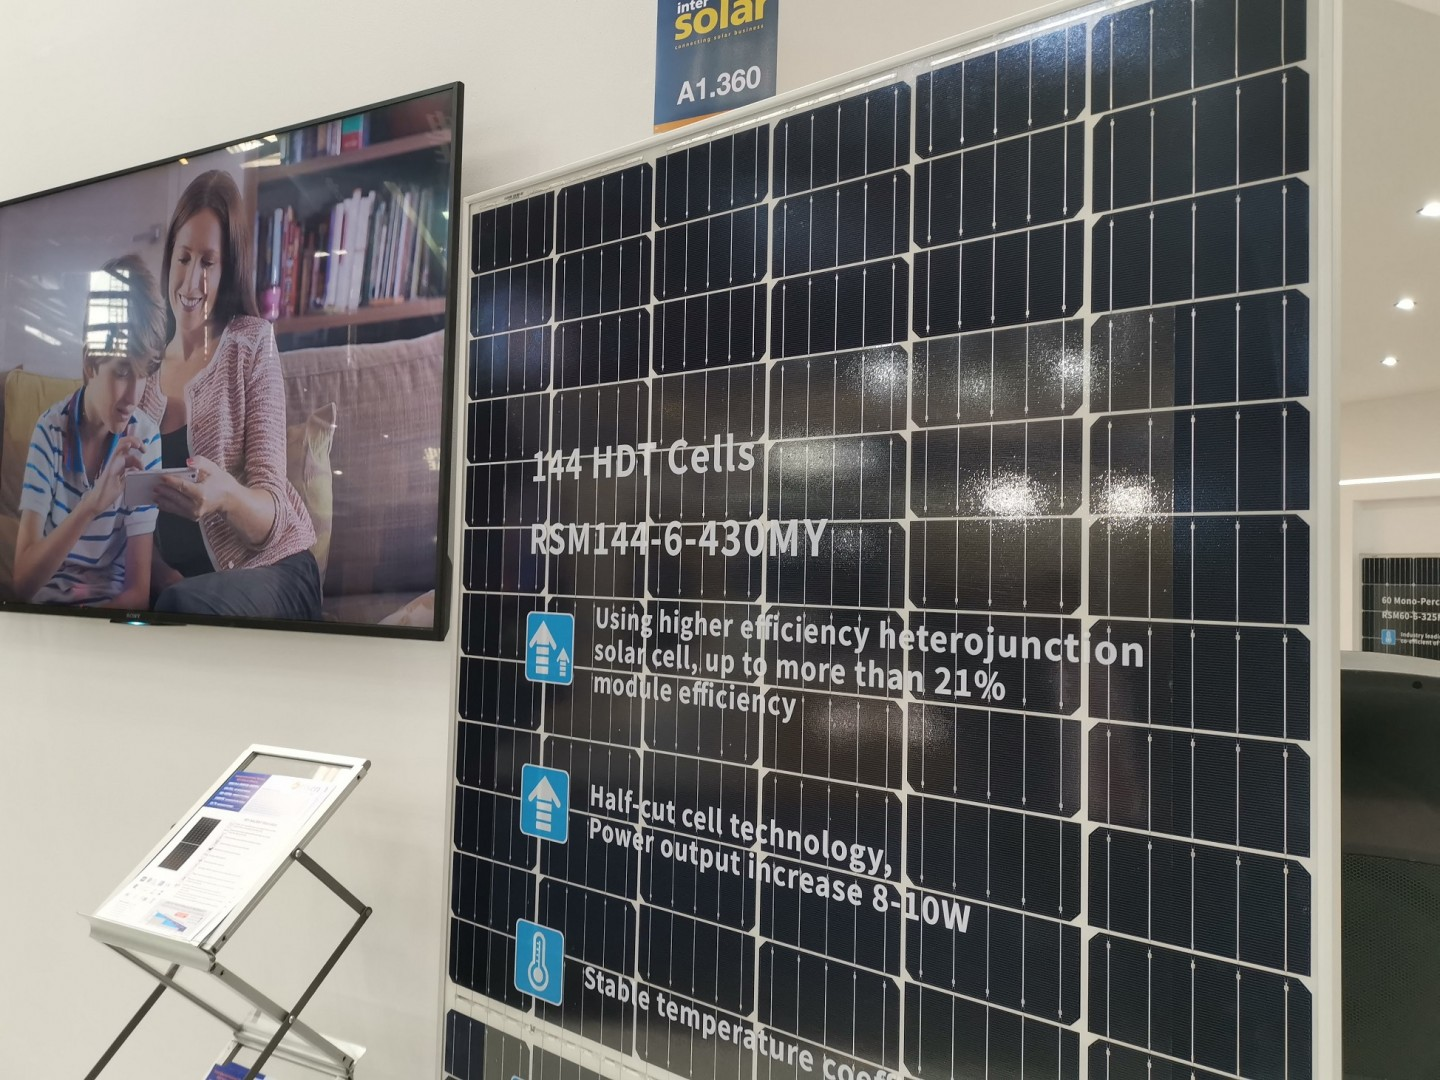 The new HDT module was unveiled at Intersolar Europe on Wednesday.